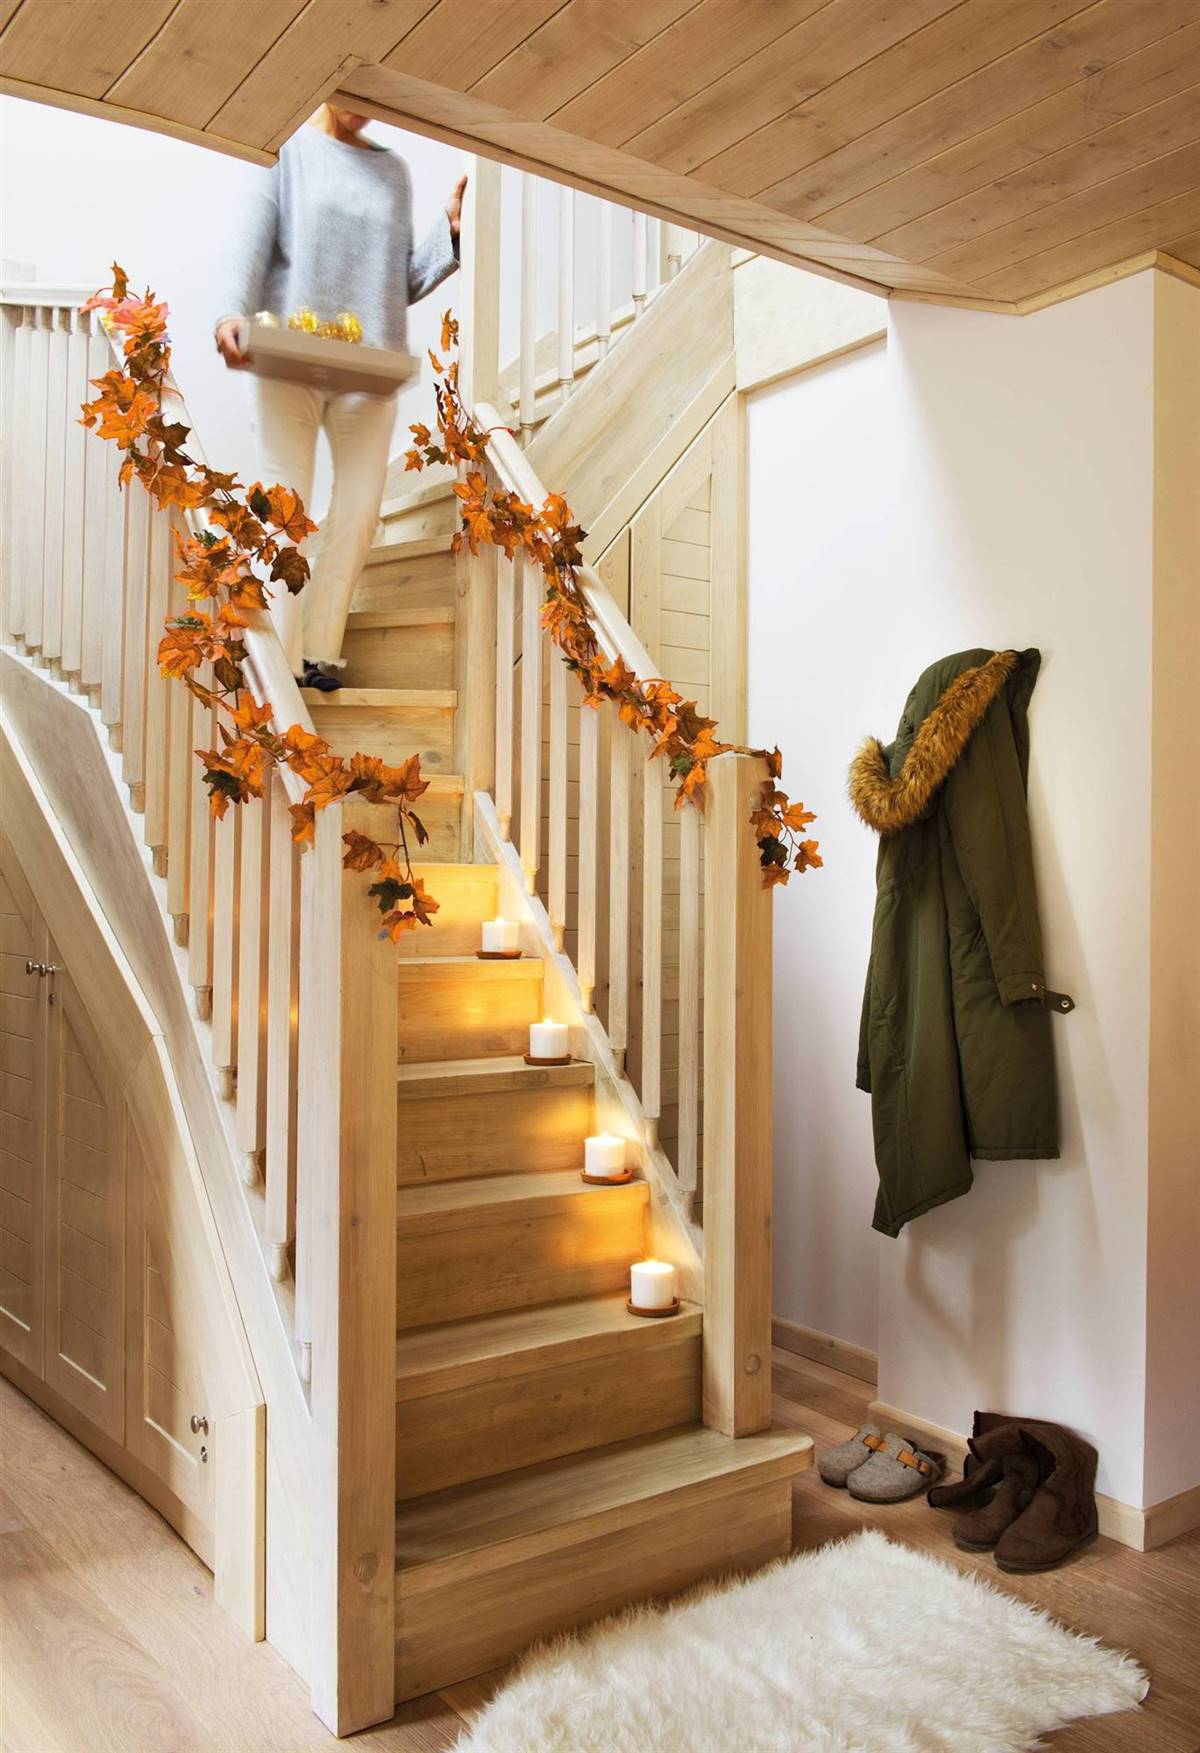 THE MOST AUTUMNAL CHRISTMAS GARLAND